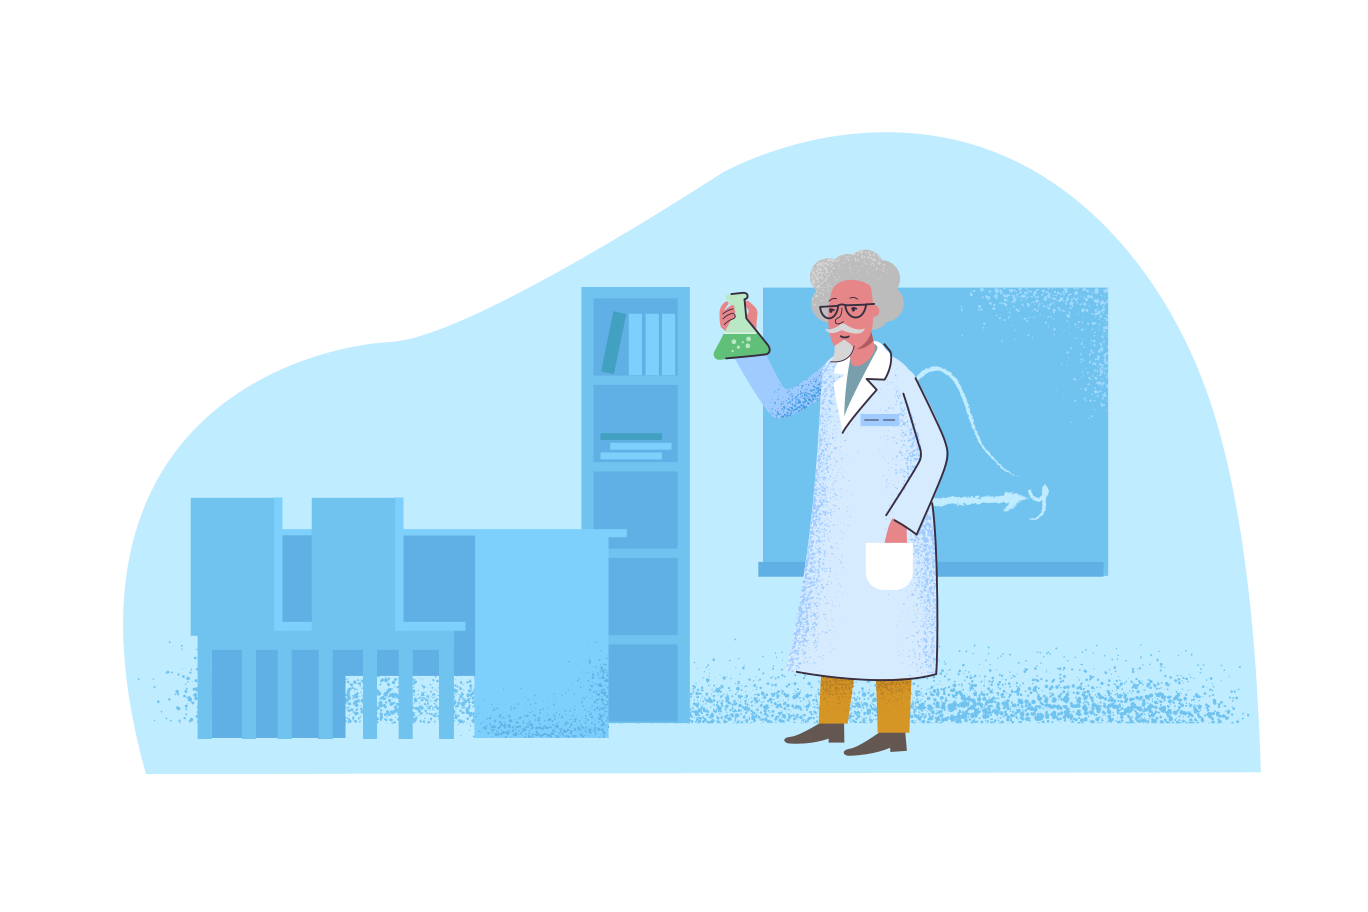 Scientific research Clipart illustration in PNG, SVG